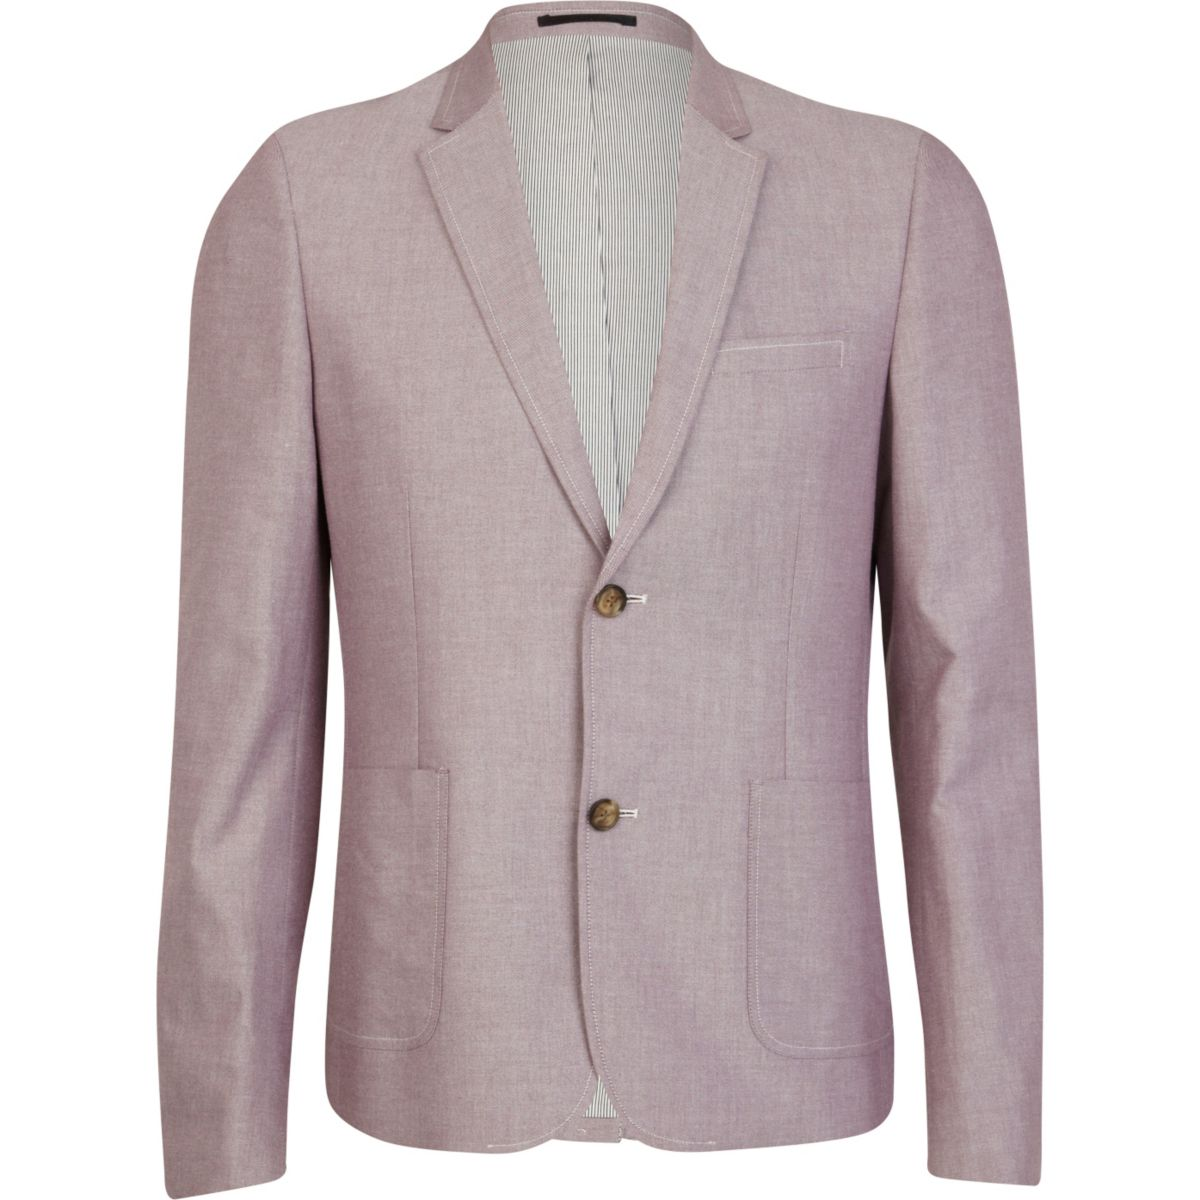 Light pink double button oxford blazer